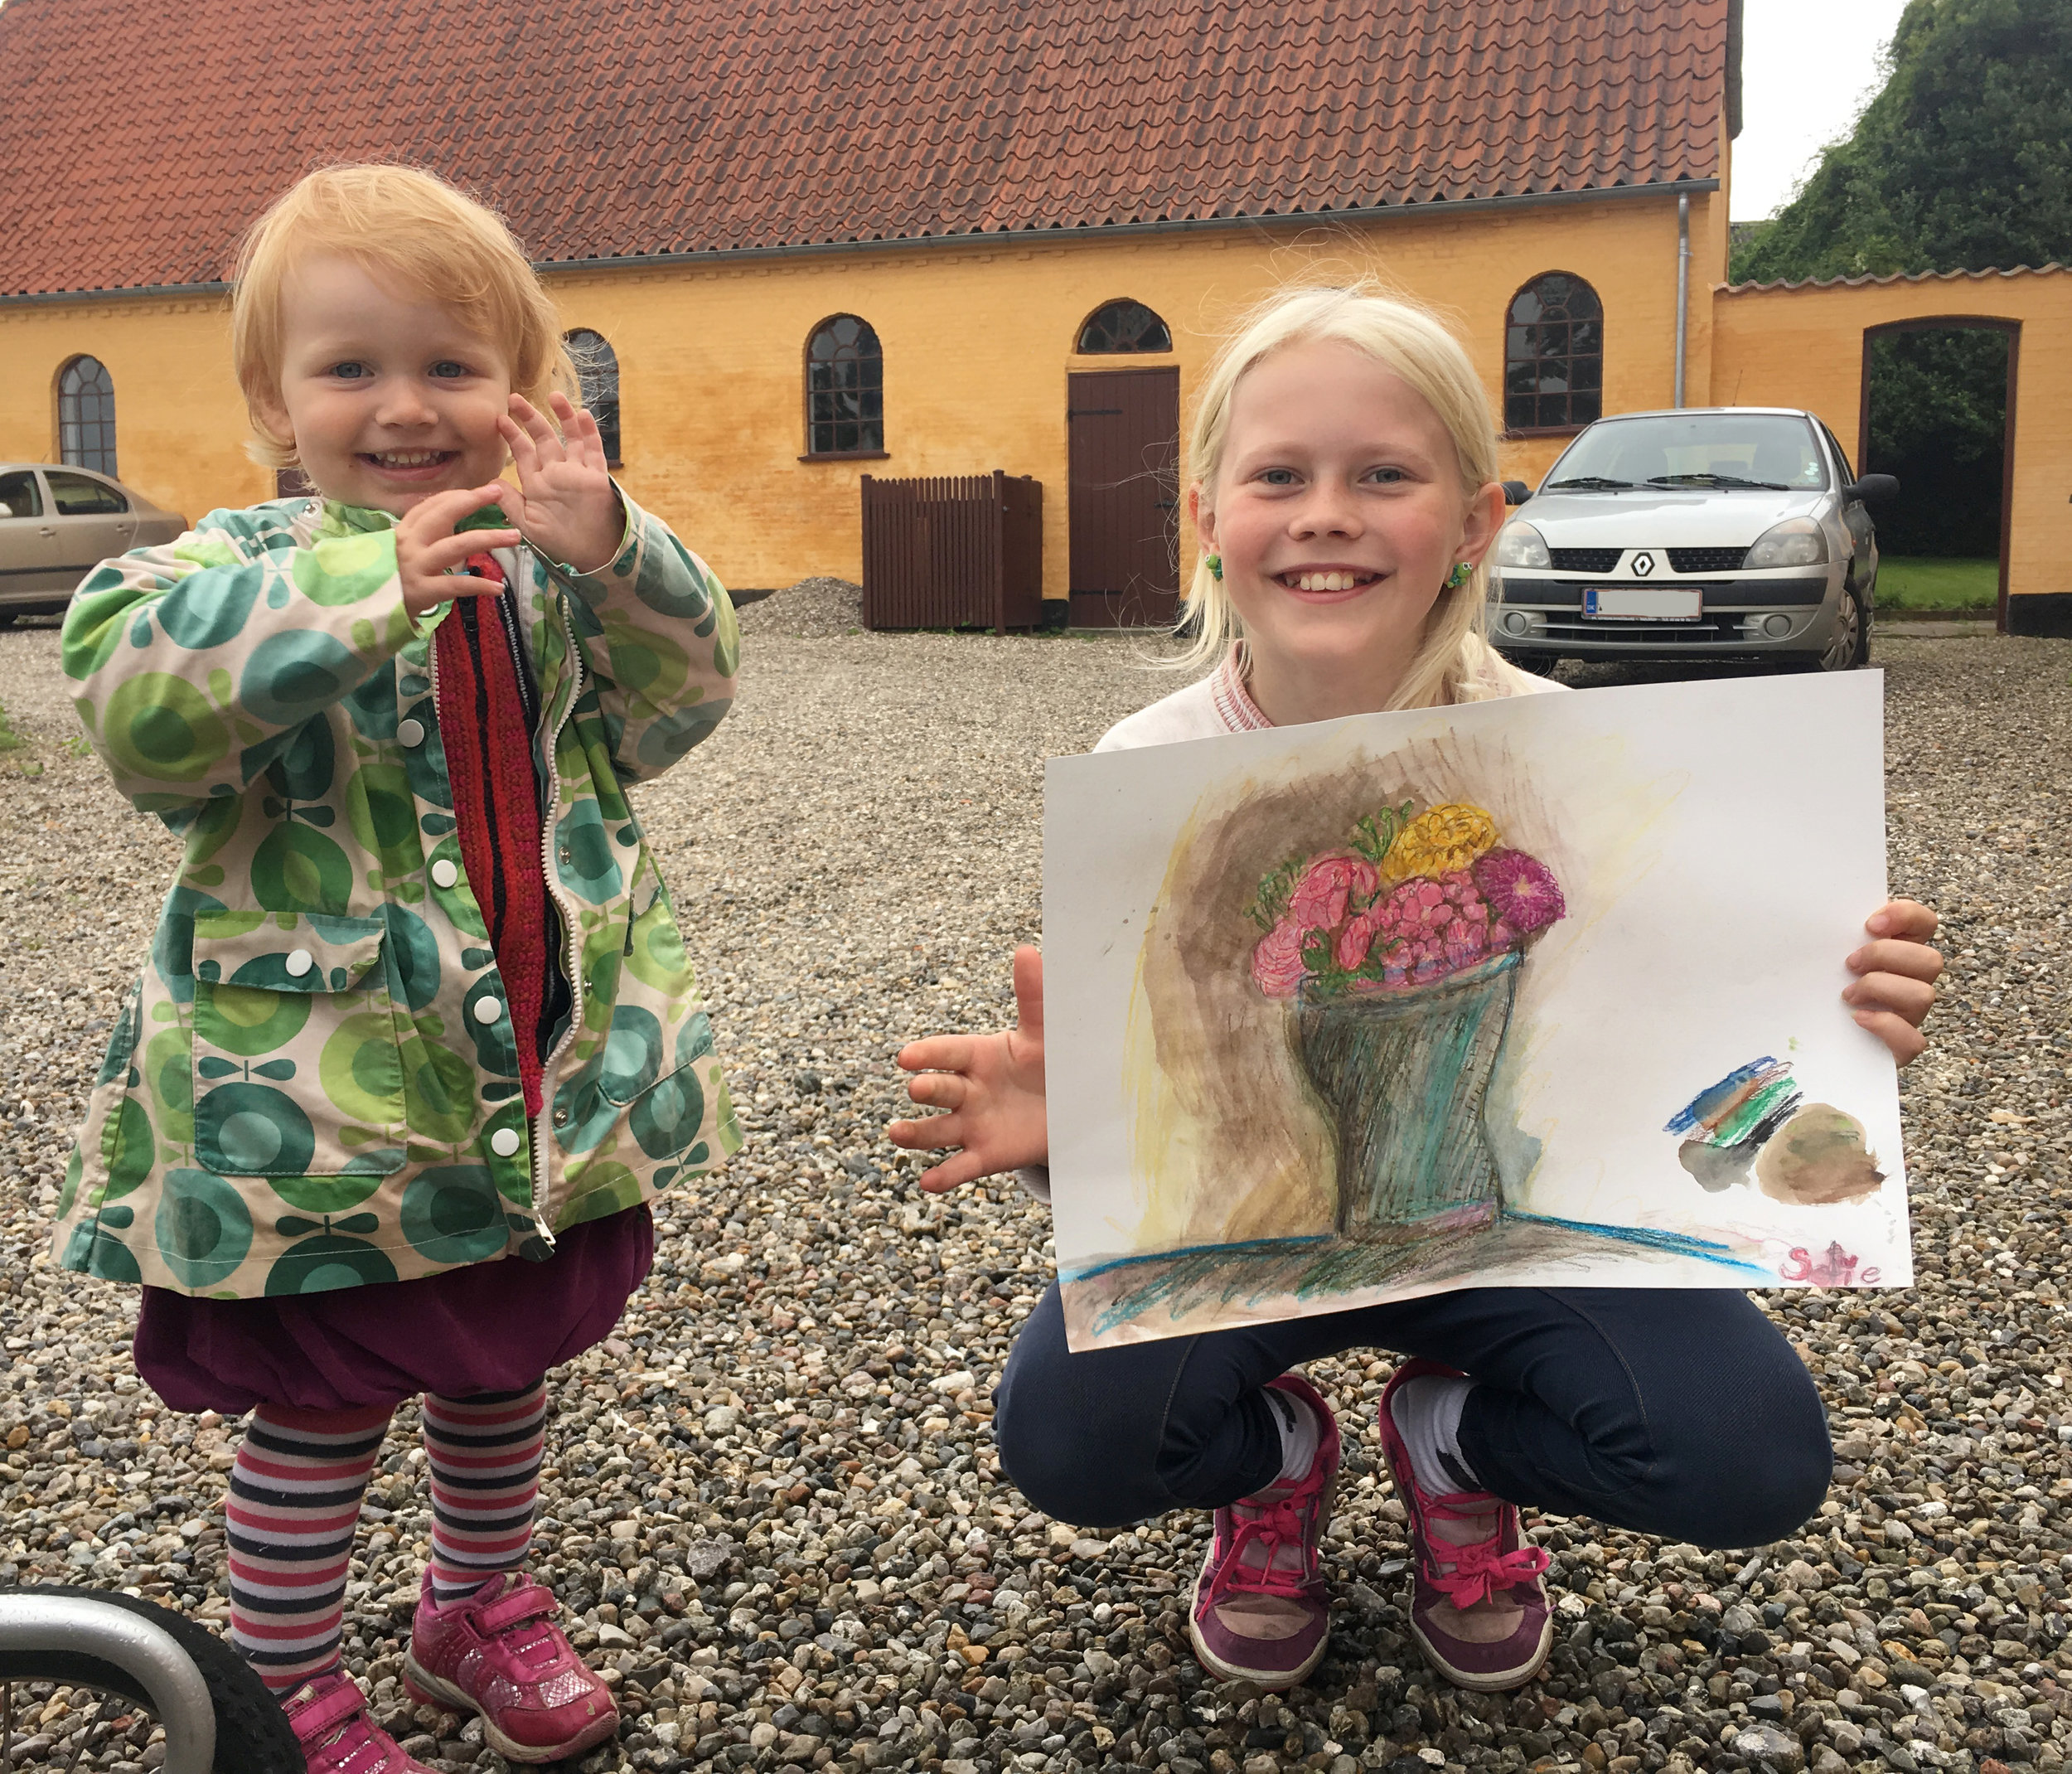 Sophie and her younger sister, Ina, pose with Sophie's gorgeous artwork. AND she gifted it to me! A treasure!